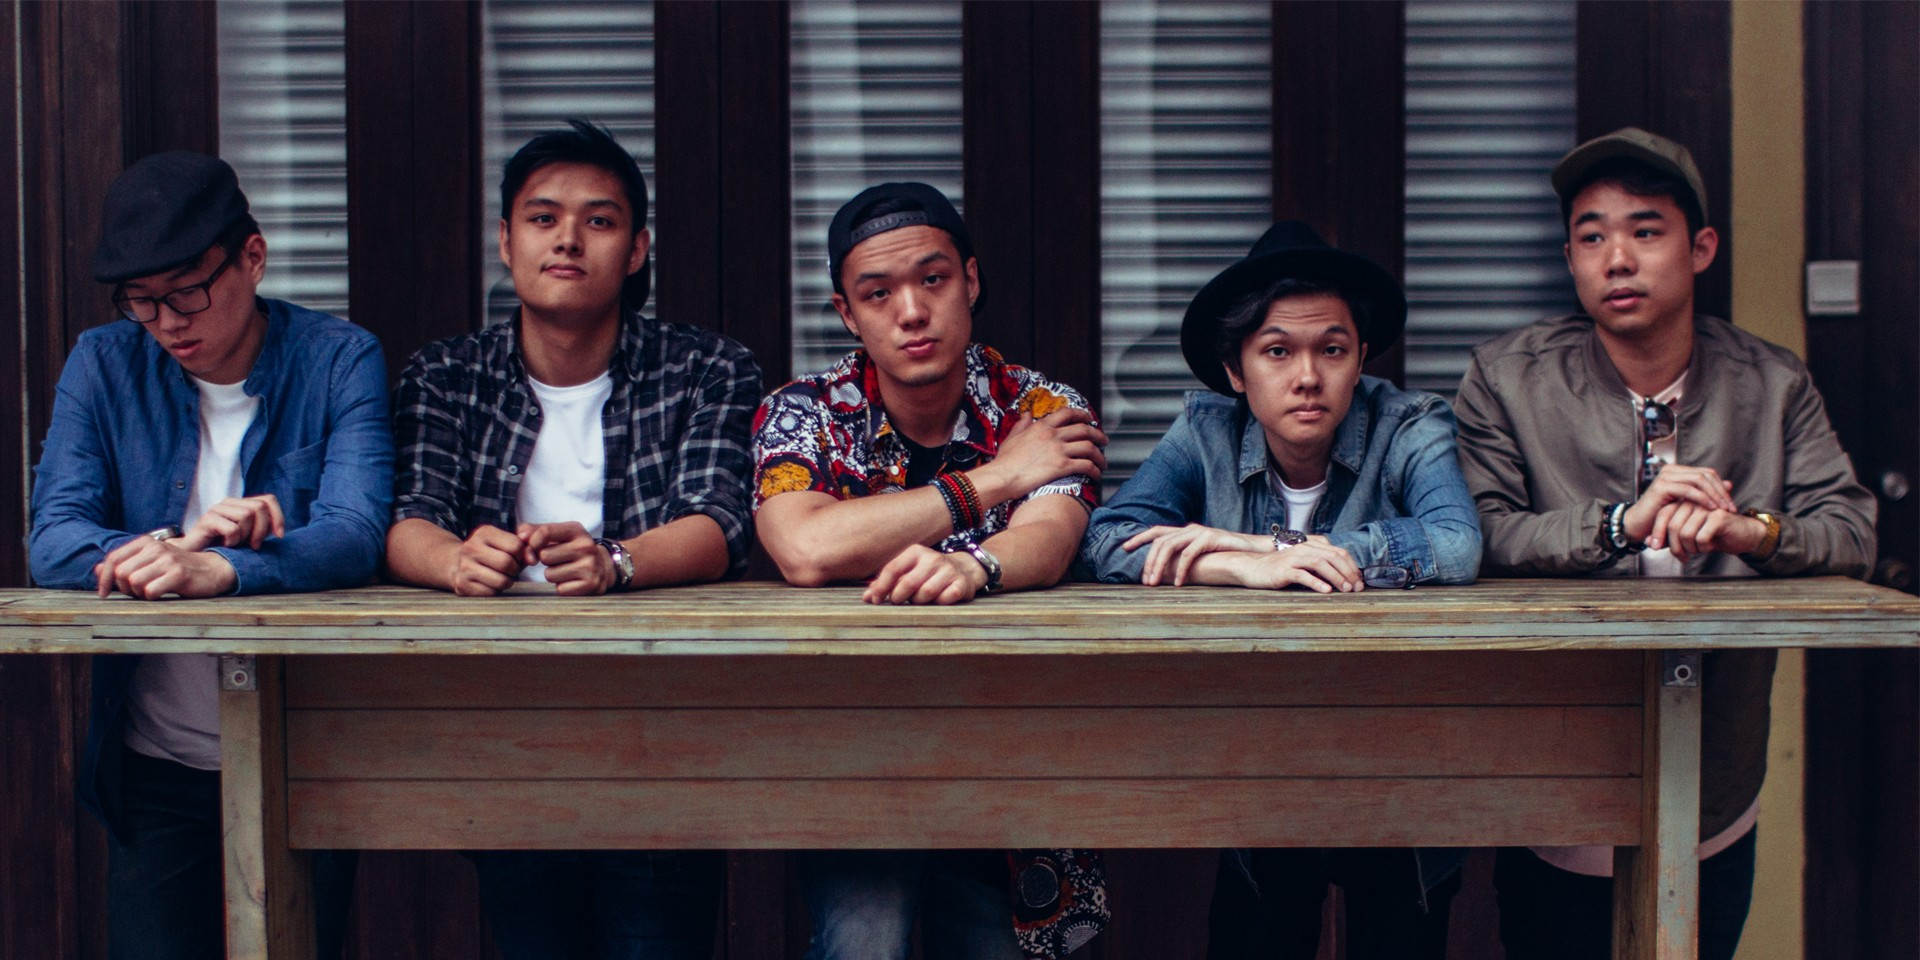 Local R&B/funk group Astronauts to launch debut EP with gig featuring Ffion and Subhas